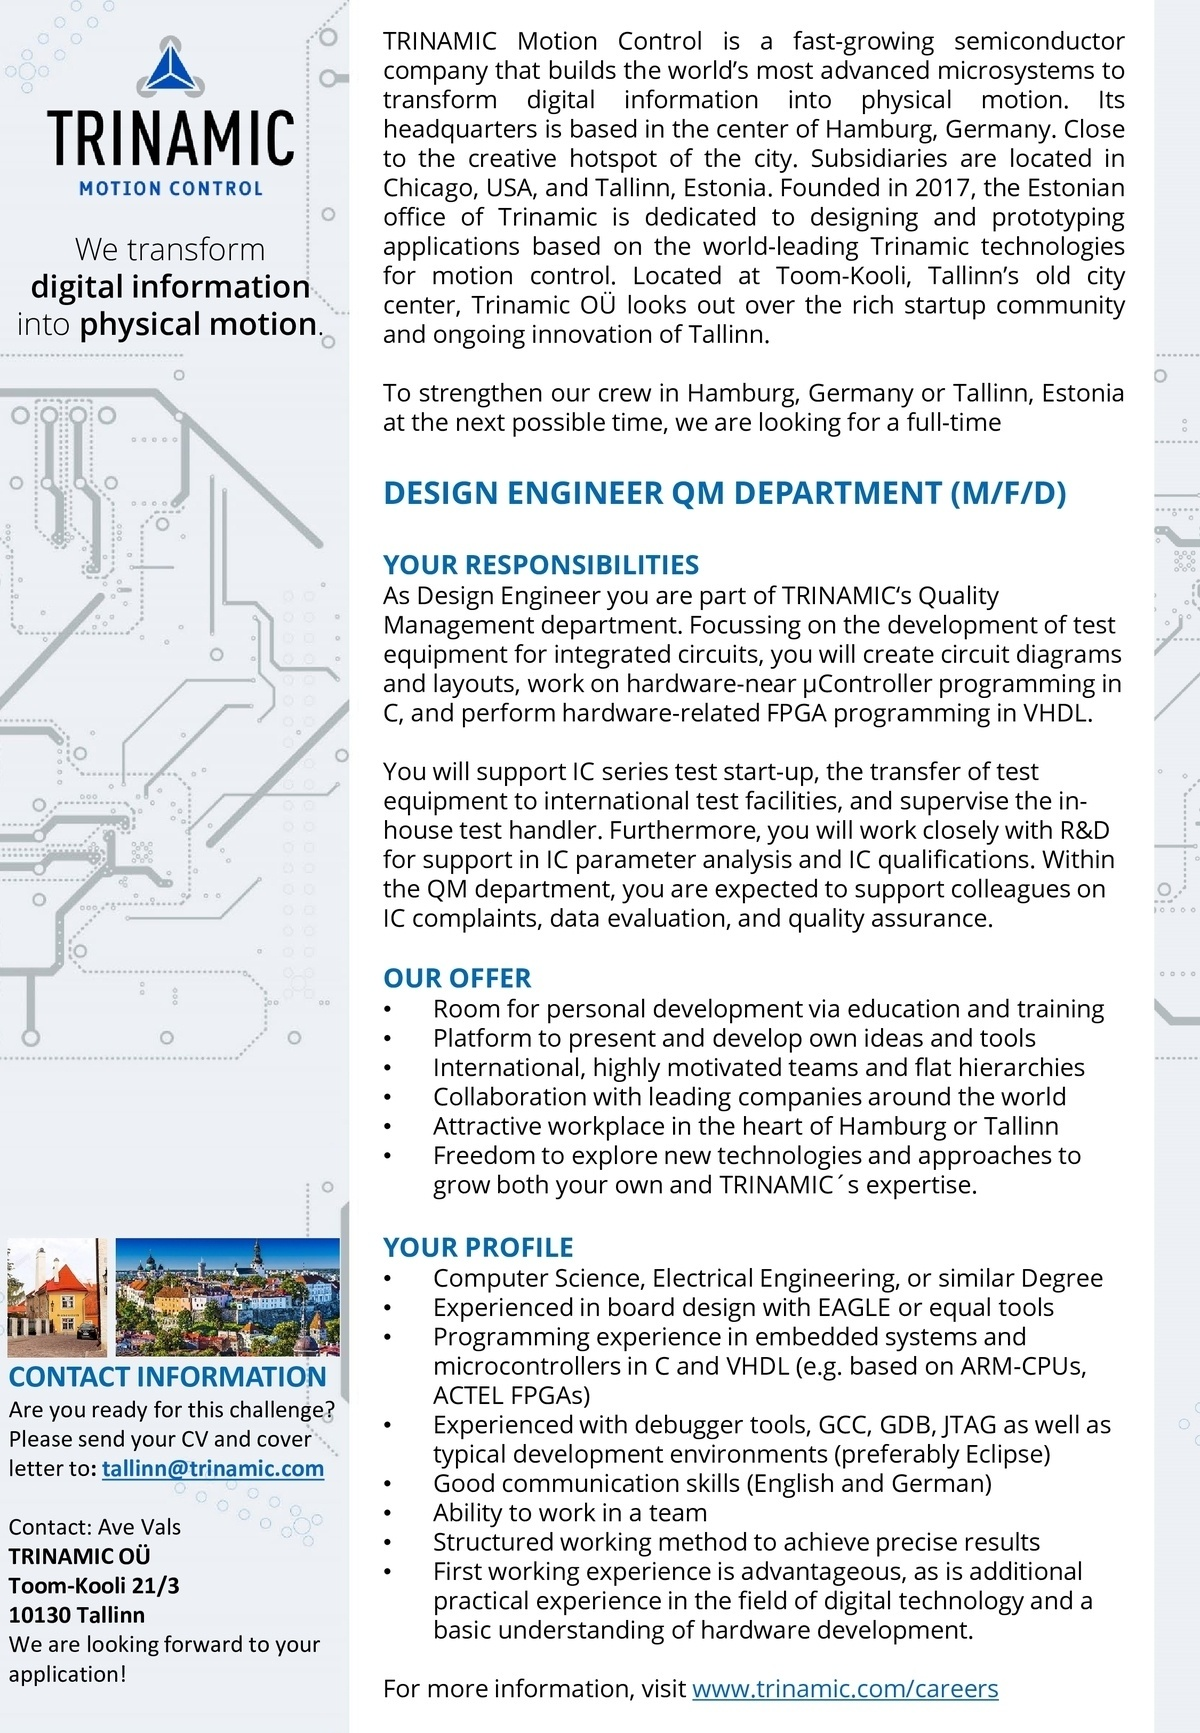 CV Market´s client DESIGN ENGINEER QM DEPARTMENT (M/F/D)